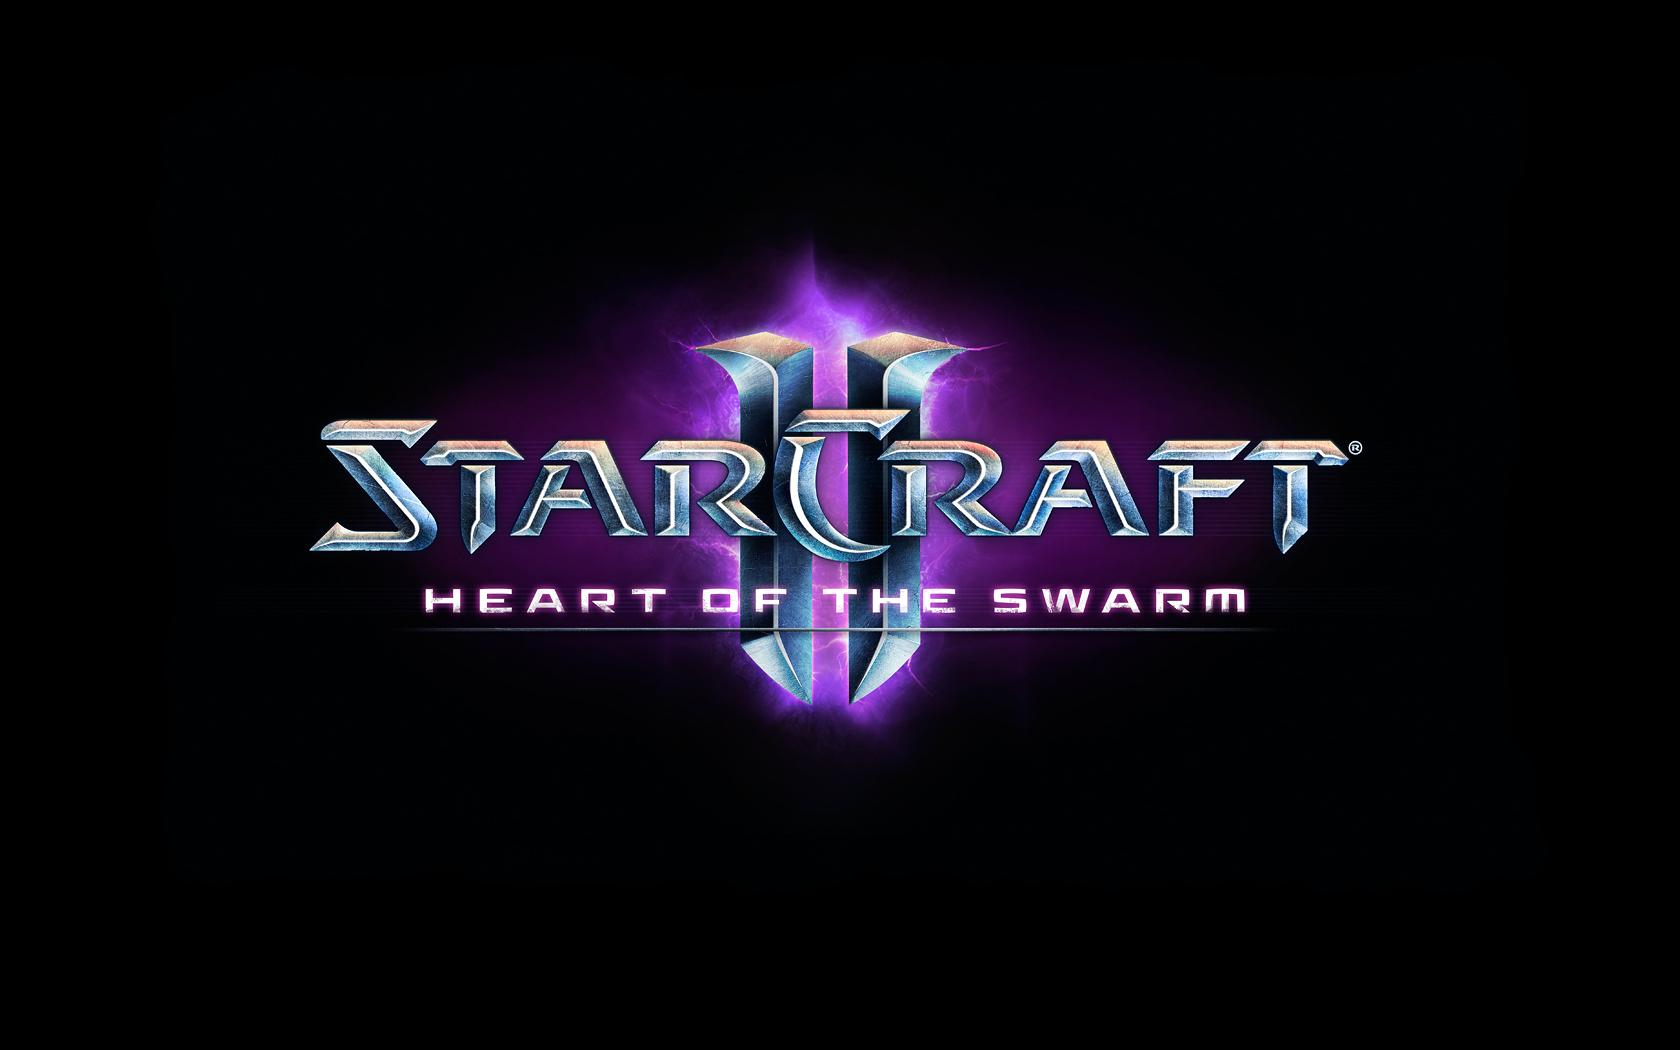 Starcraft 2 Heart of the Swarm wallpaper 2